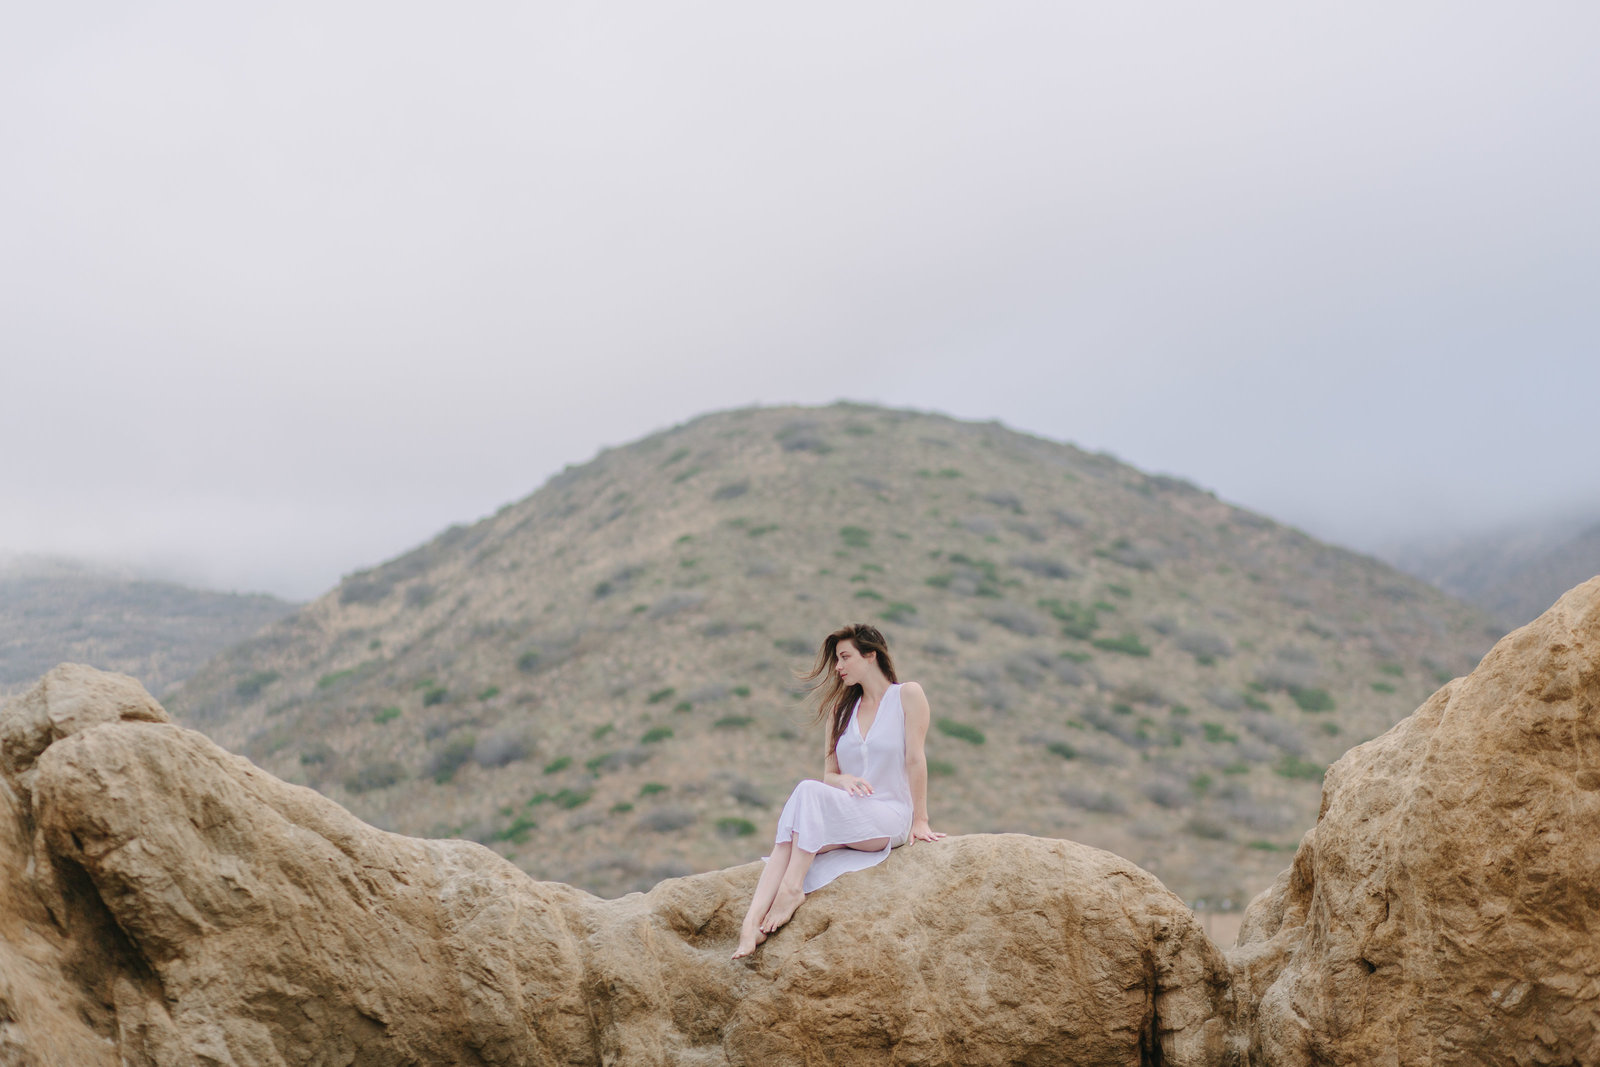 El Leo Carrillo Beach Malibu Angelika Johns Photography-3622